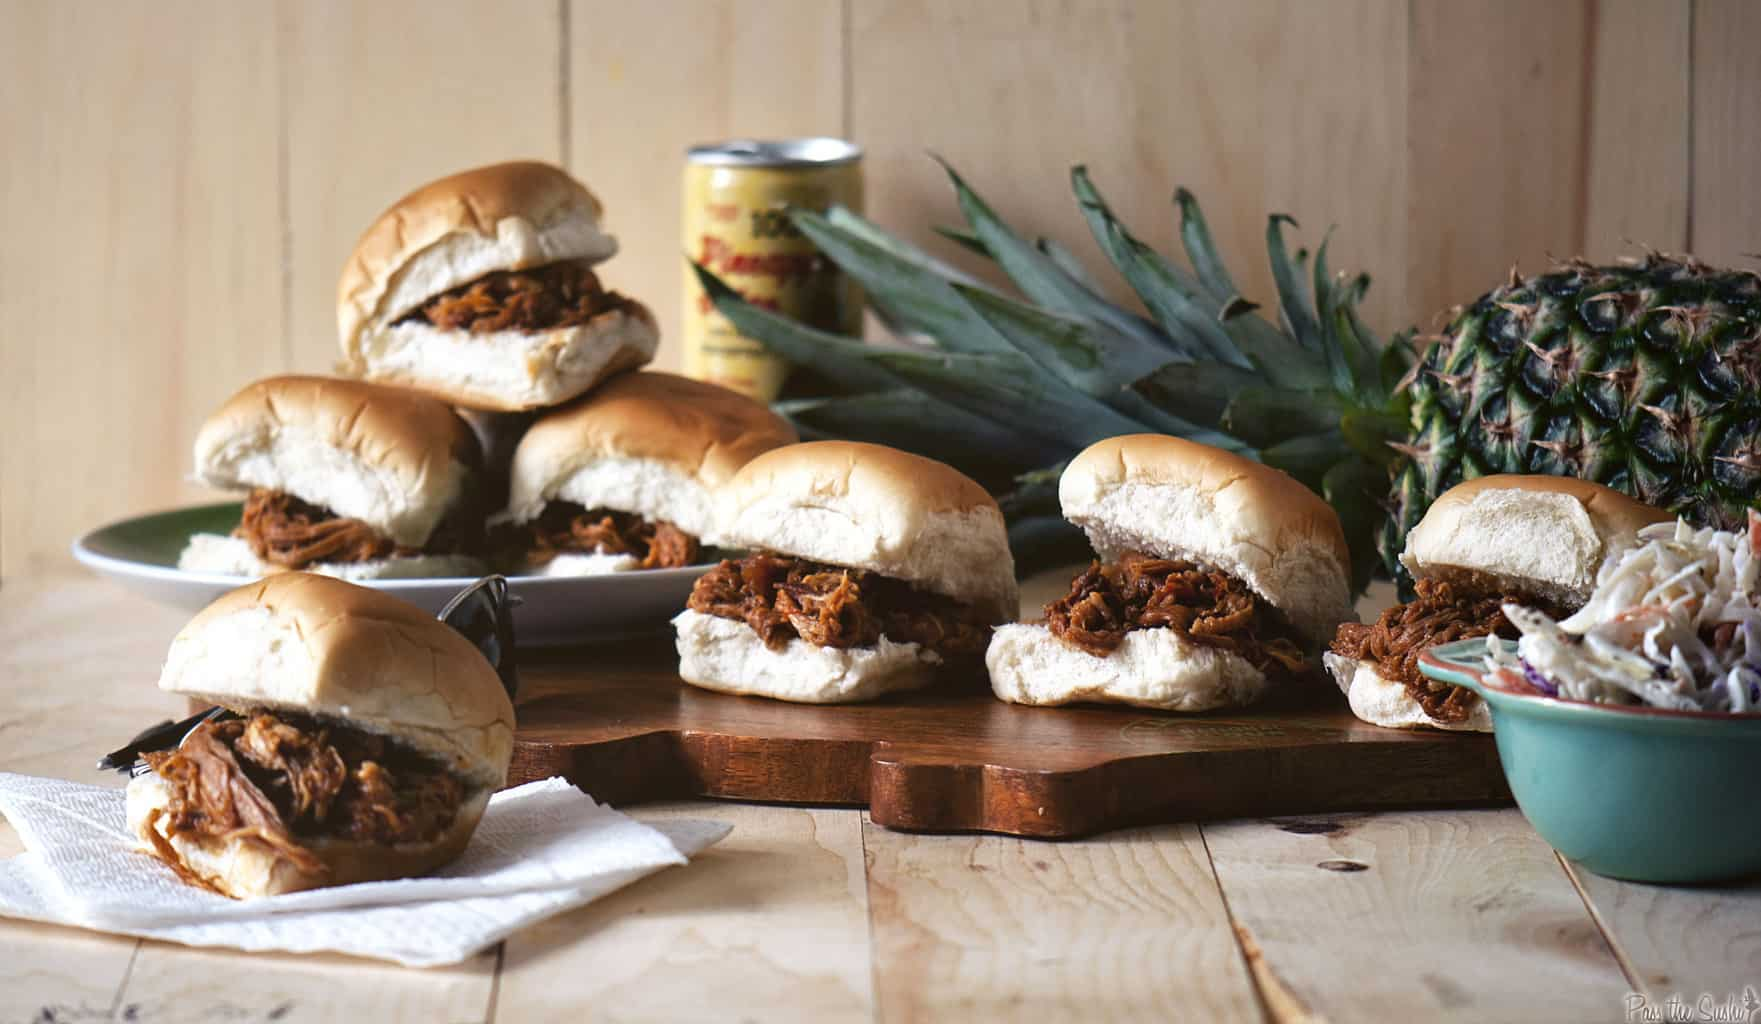 Quick Dinner Fixins: Hawaiian Pulled Pork Sandwiches